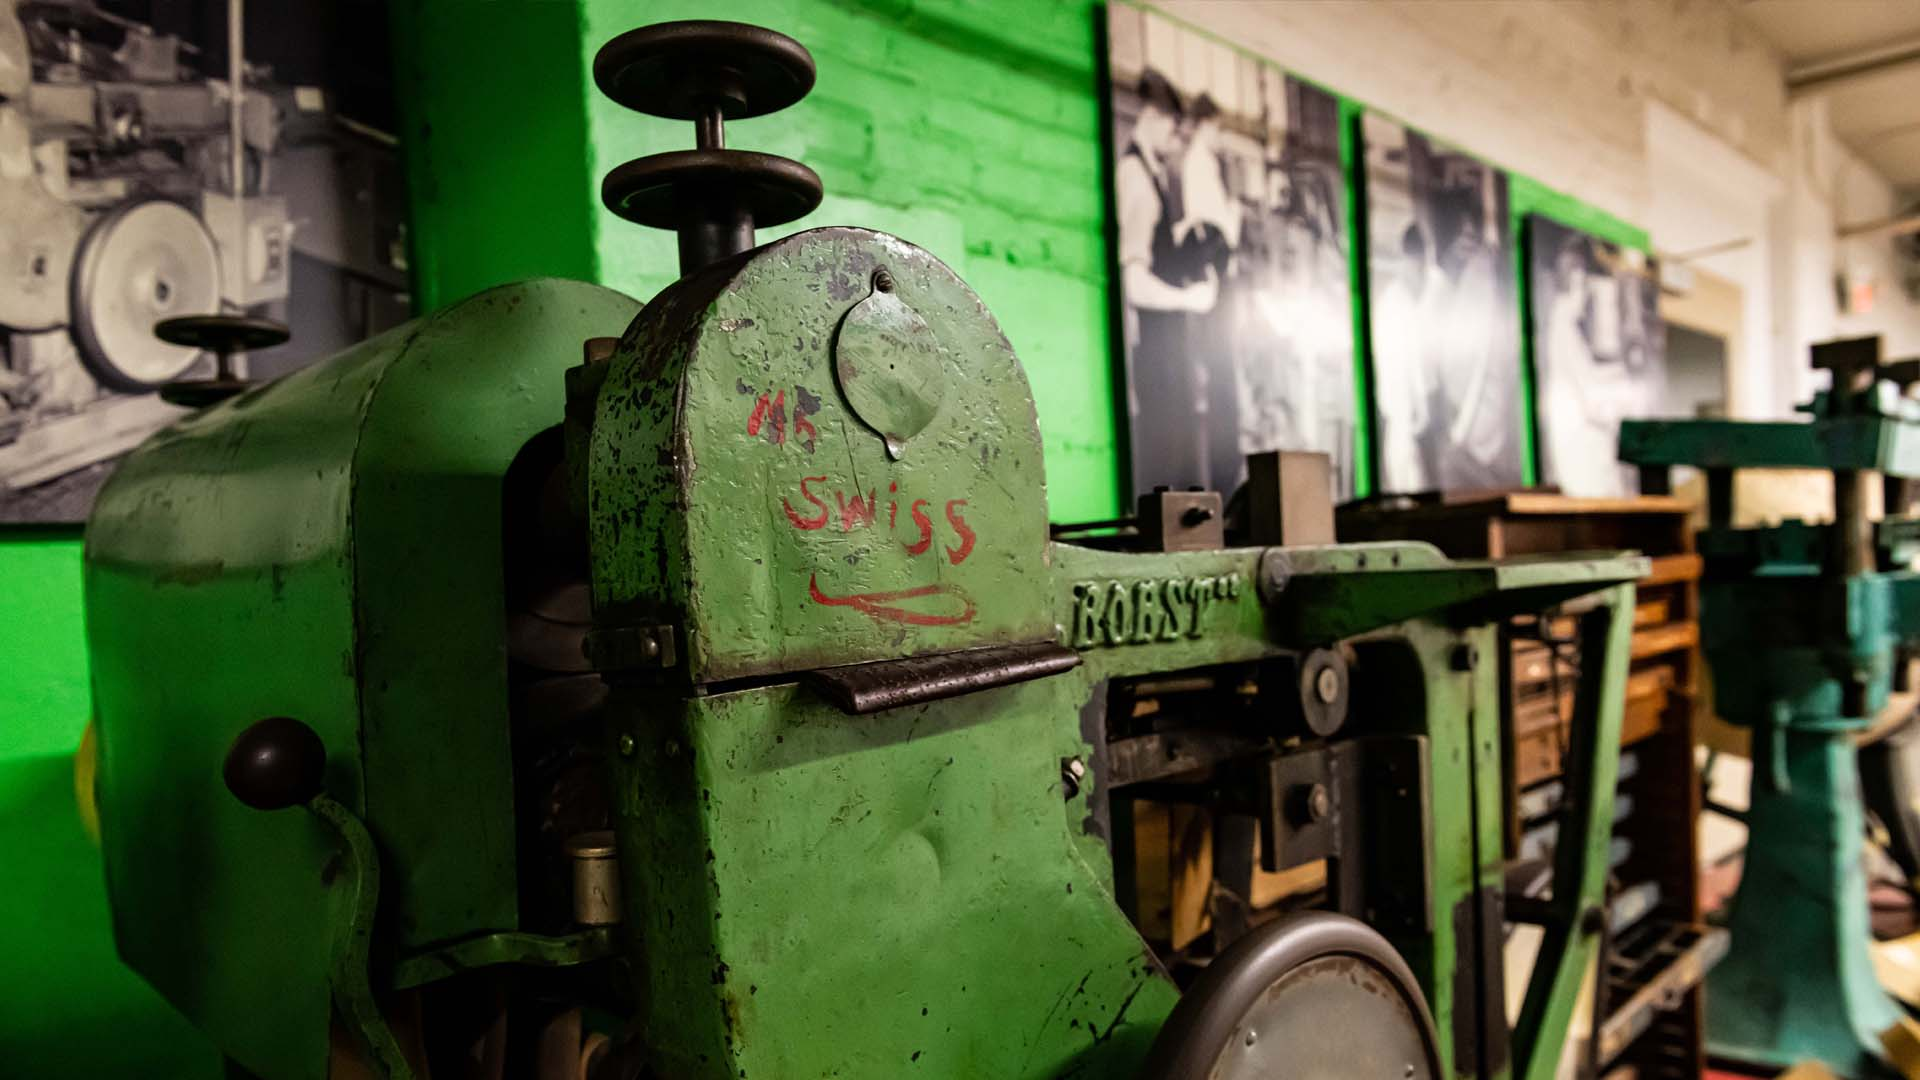 """Closeup of green metal casing on a printing press in a museum exhibit. Cast into the frame at right is """"Bobst."""" Painted onto the casing in red is """"Mr. Swiss."""""""